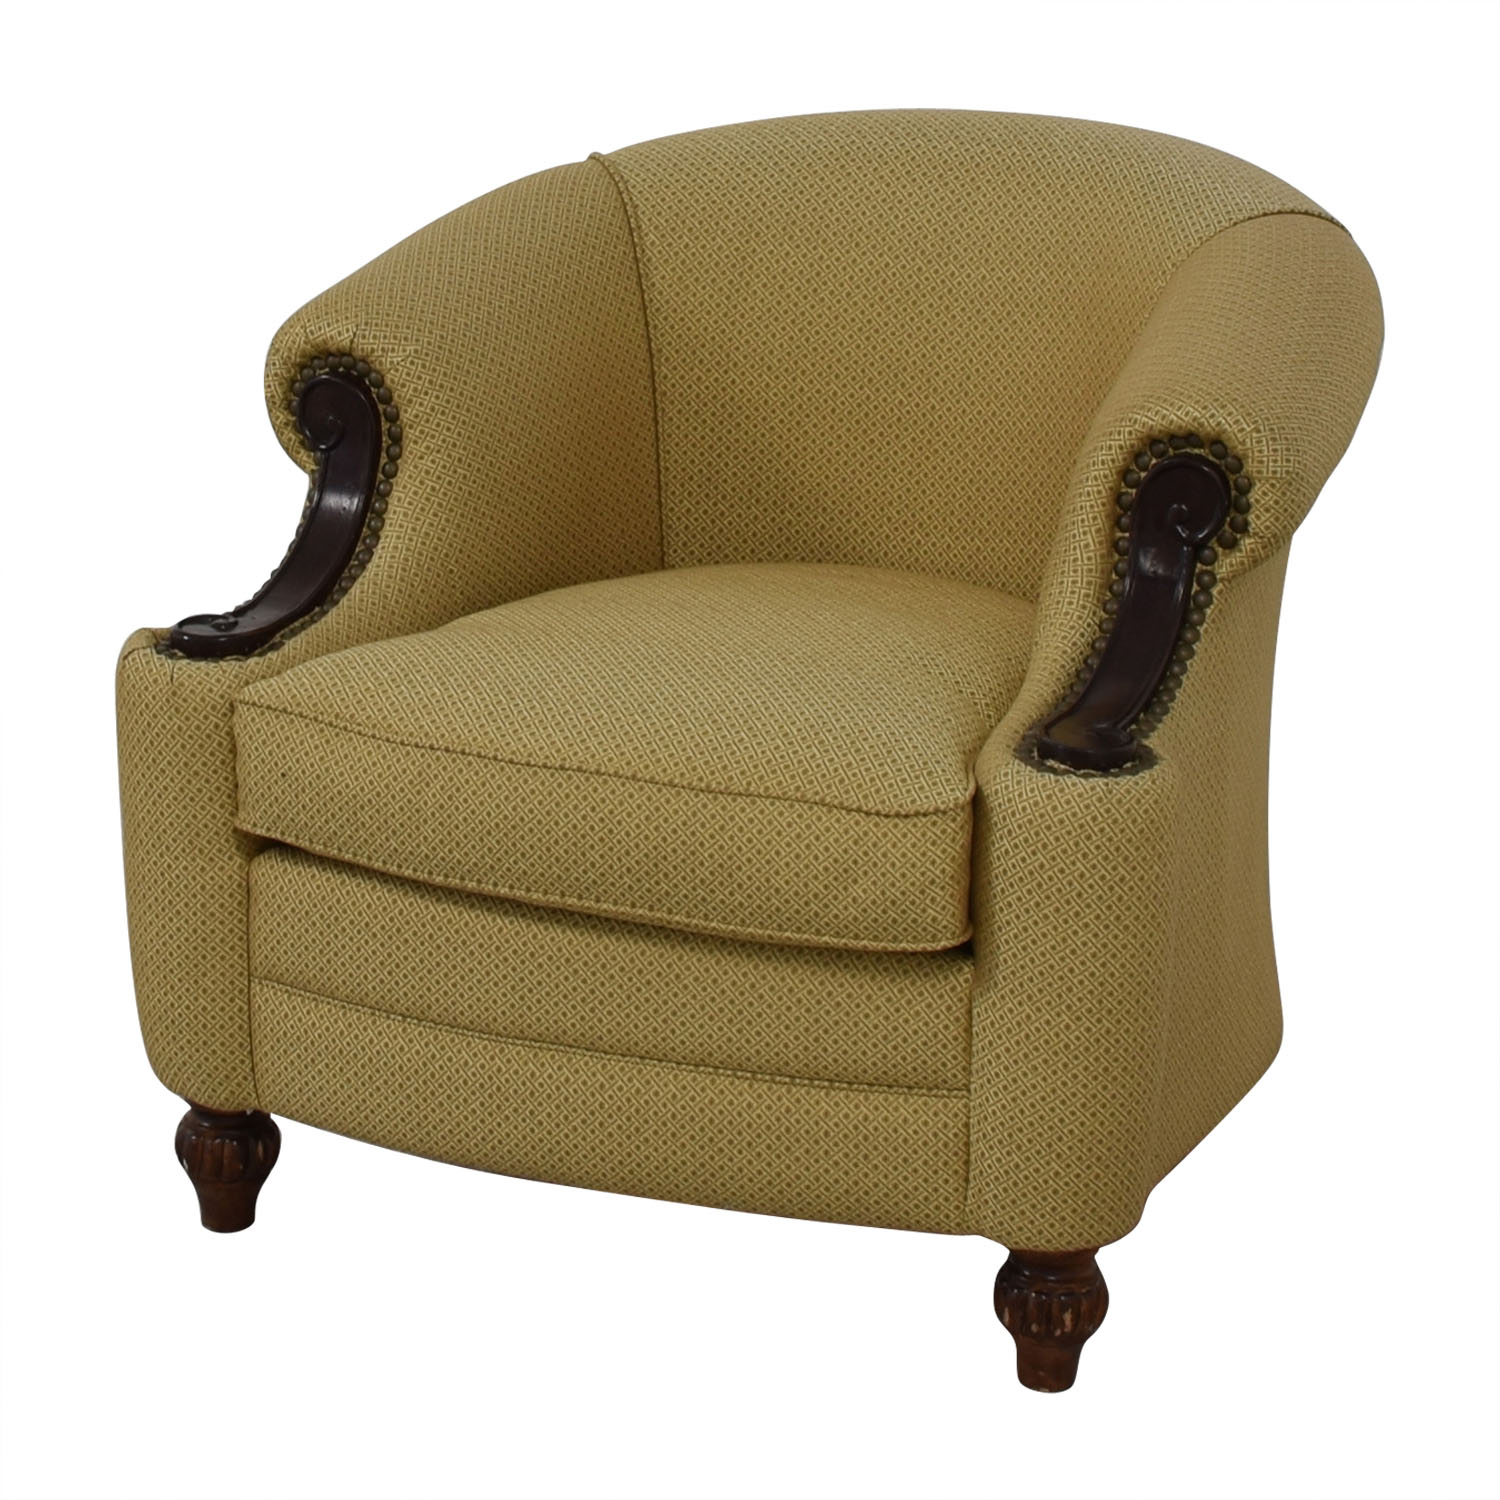 Kincaid Furniture Studded Classic Custom Fabric Chair / Accent Chairs